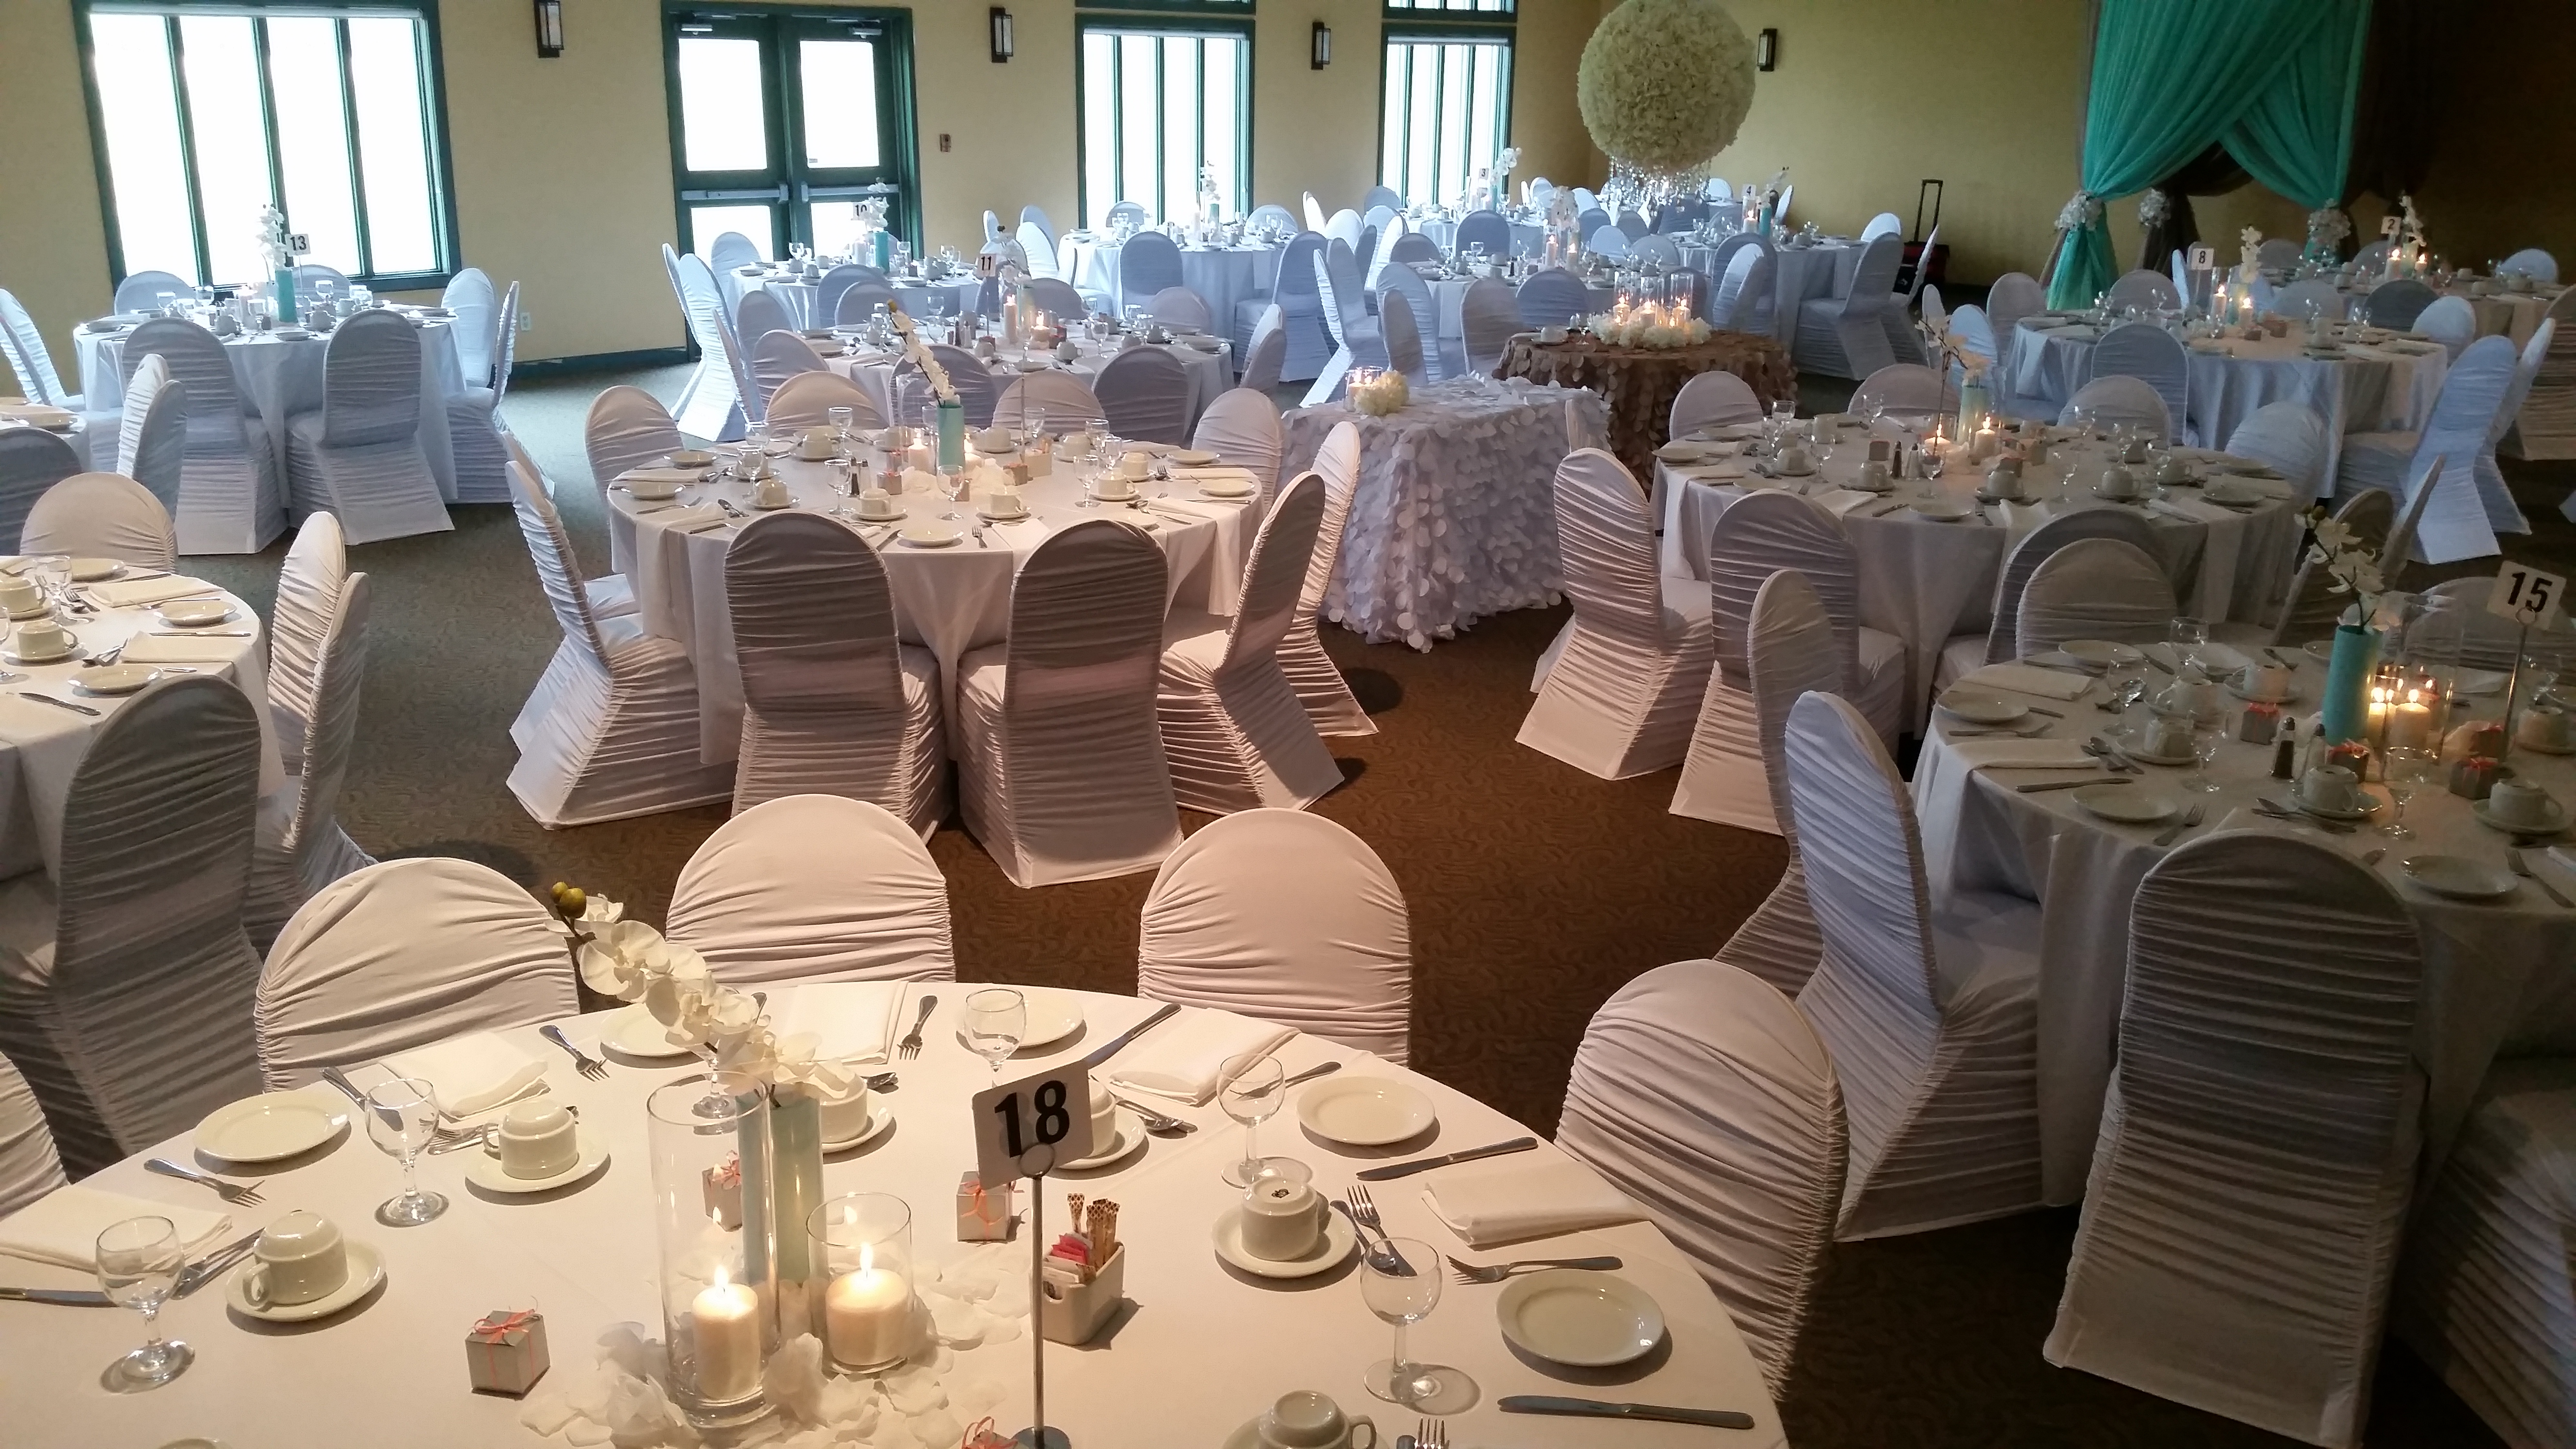 wedding chair cover rentals edmonton nursery with ottoman pictures of past weddings all west